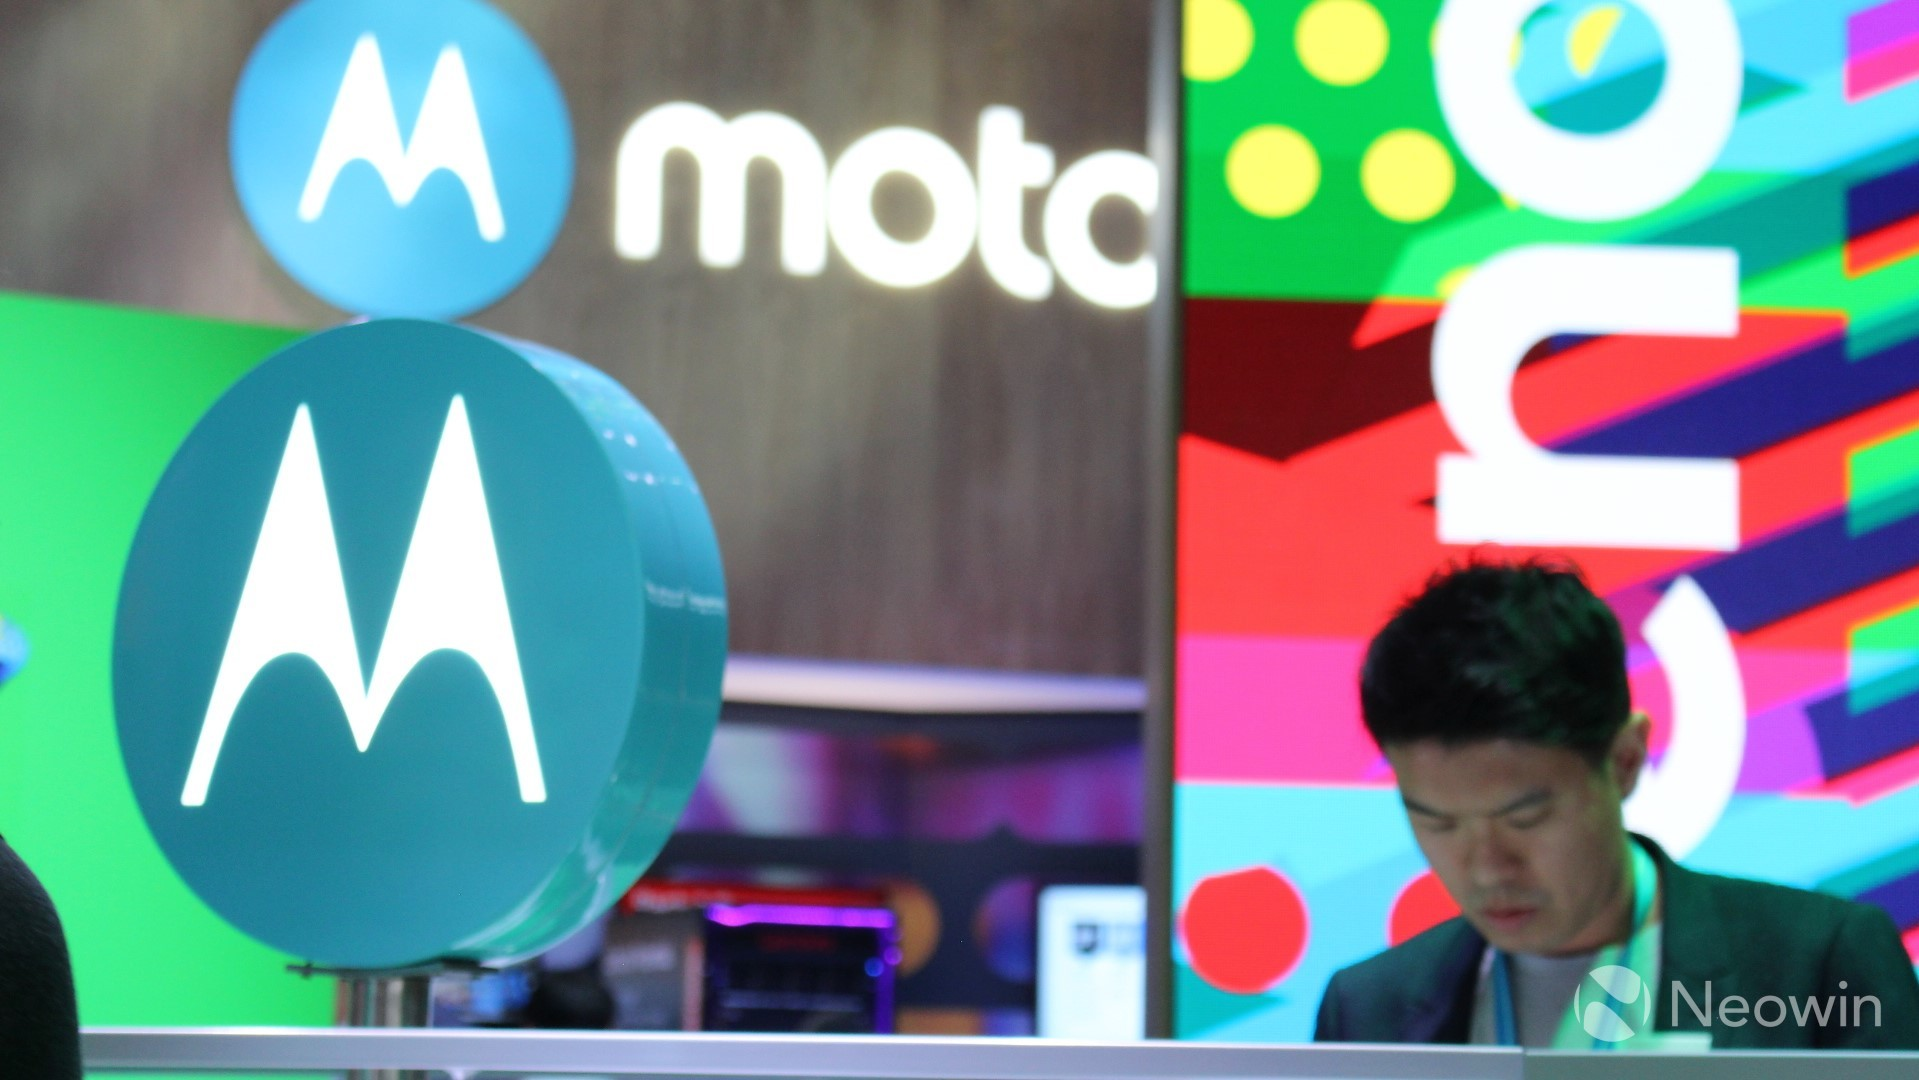 Motorola is making an Android-toting iPad Pro rival, reports say